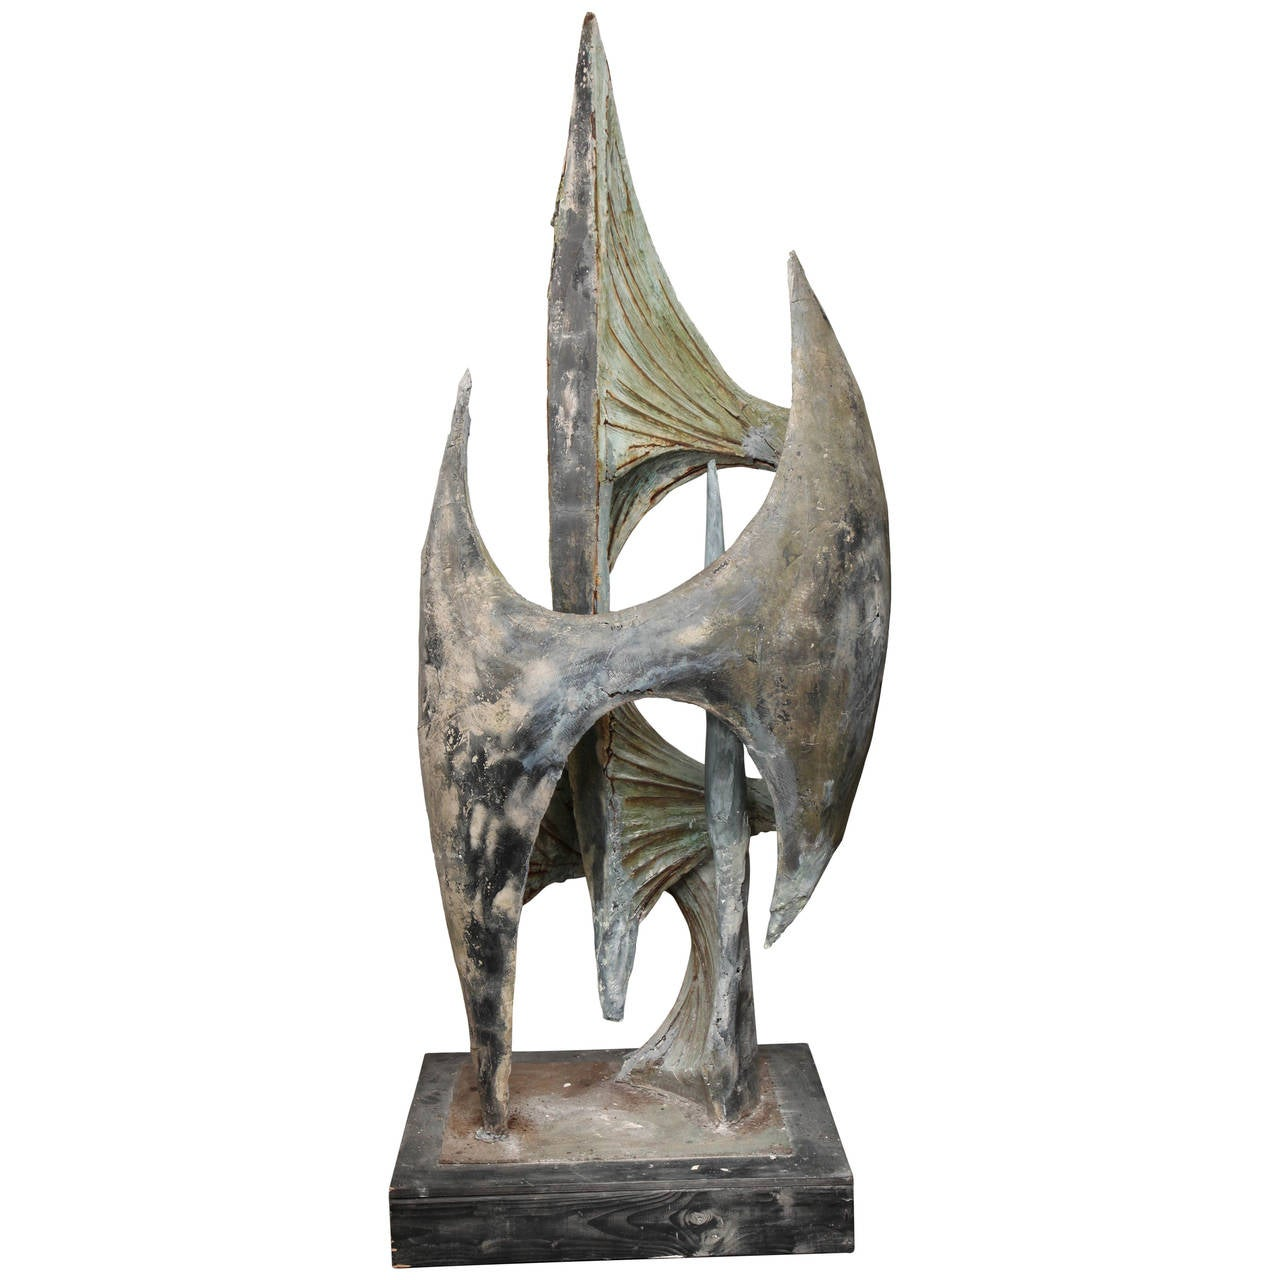 Monumental Abstract Modernist Surrealist Sculpture Signed J Segura, 1969